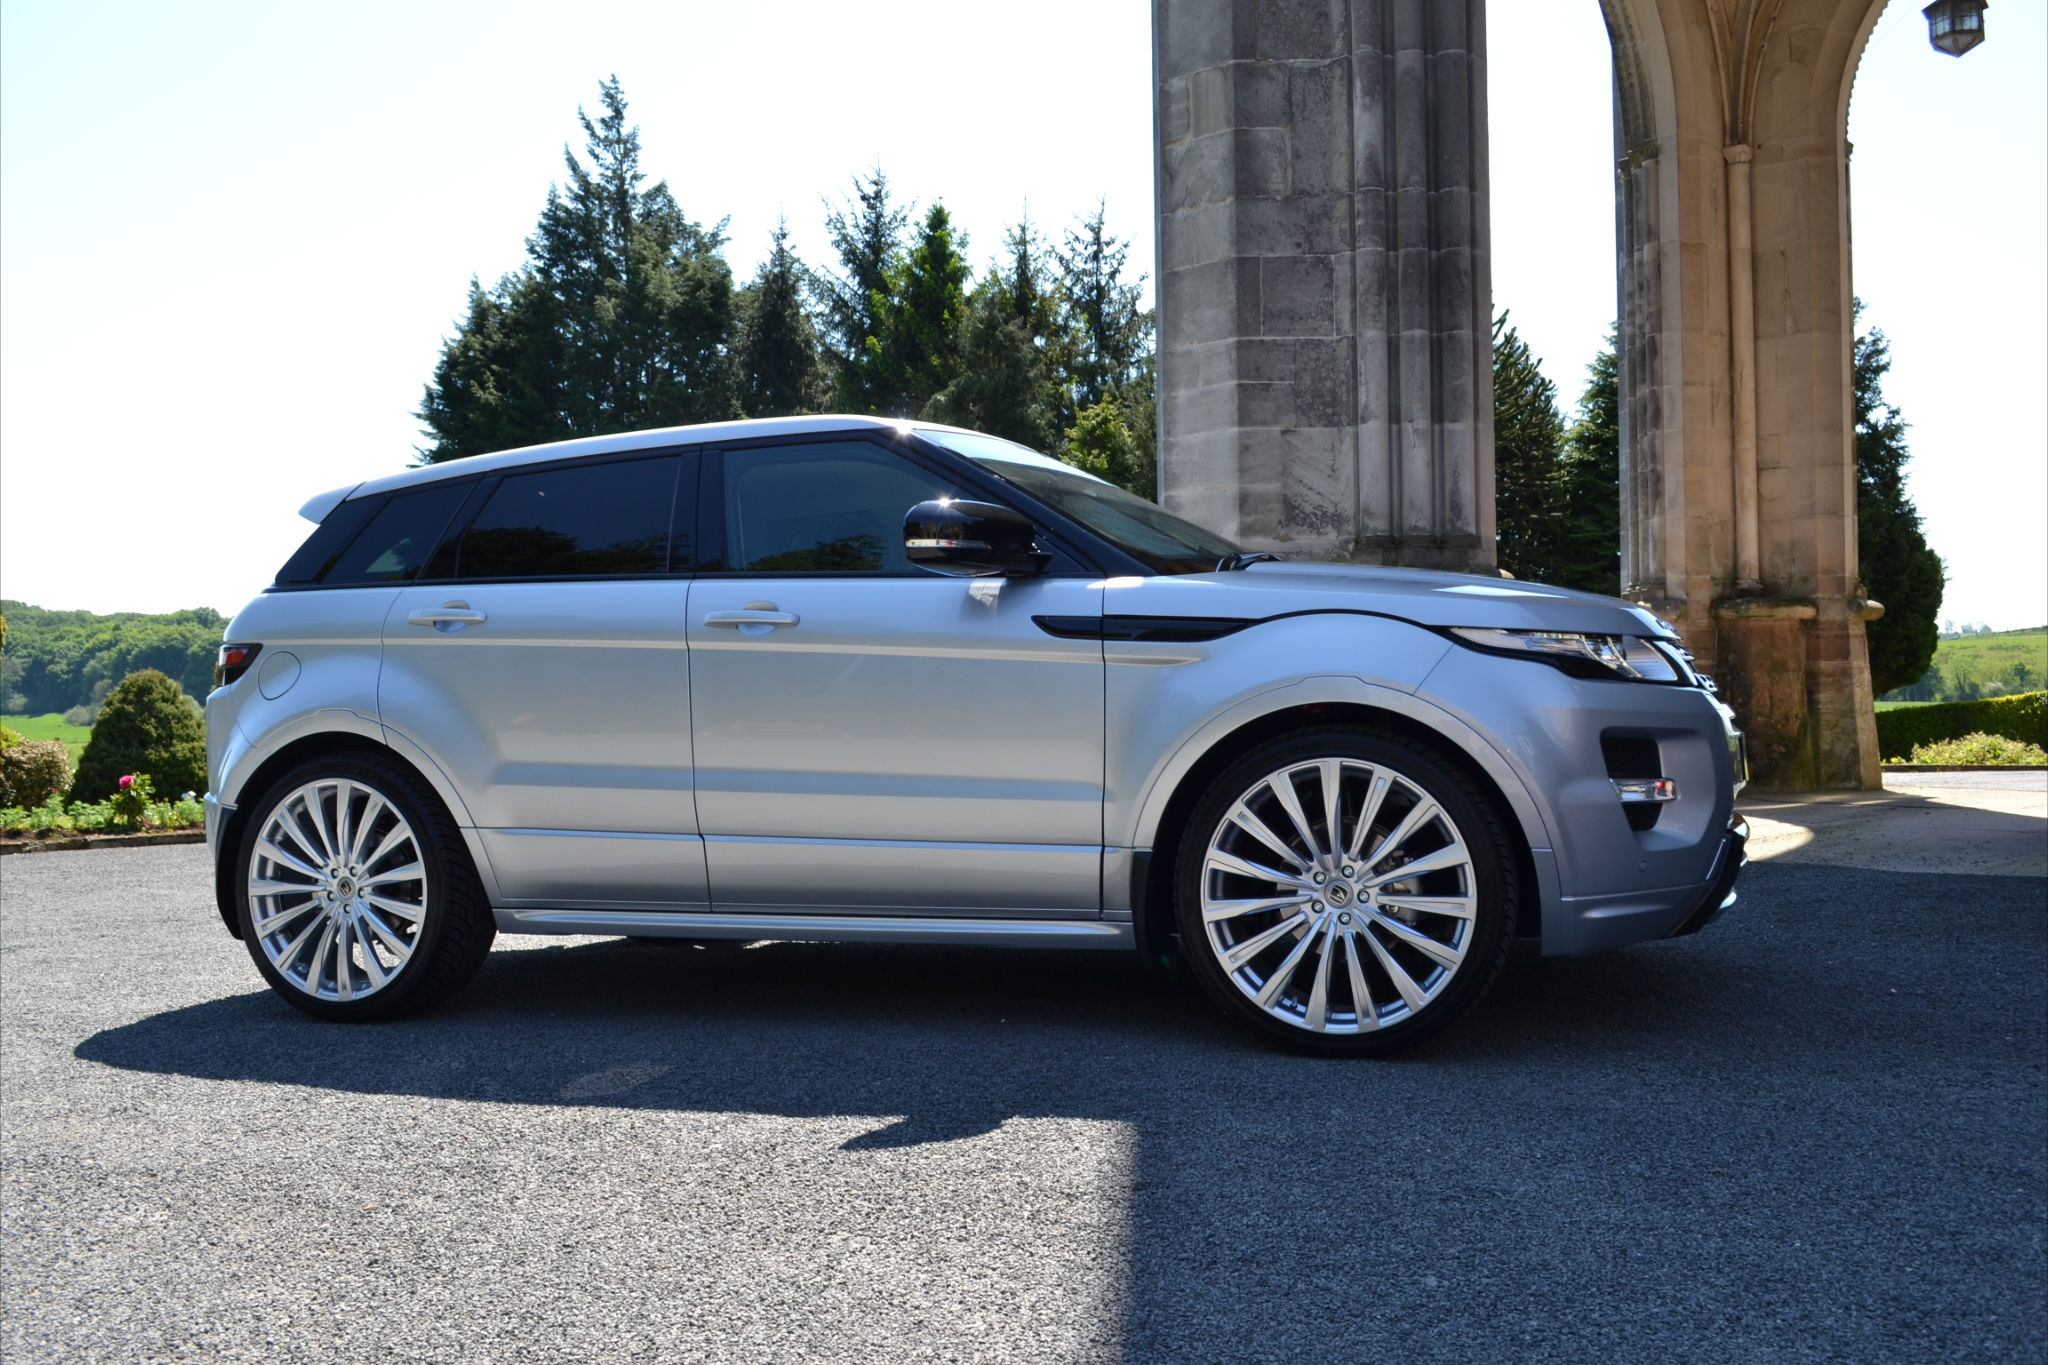 Silver Range Rover Evoque on HAWKE Chayton wheels in Silver colour finish